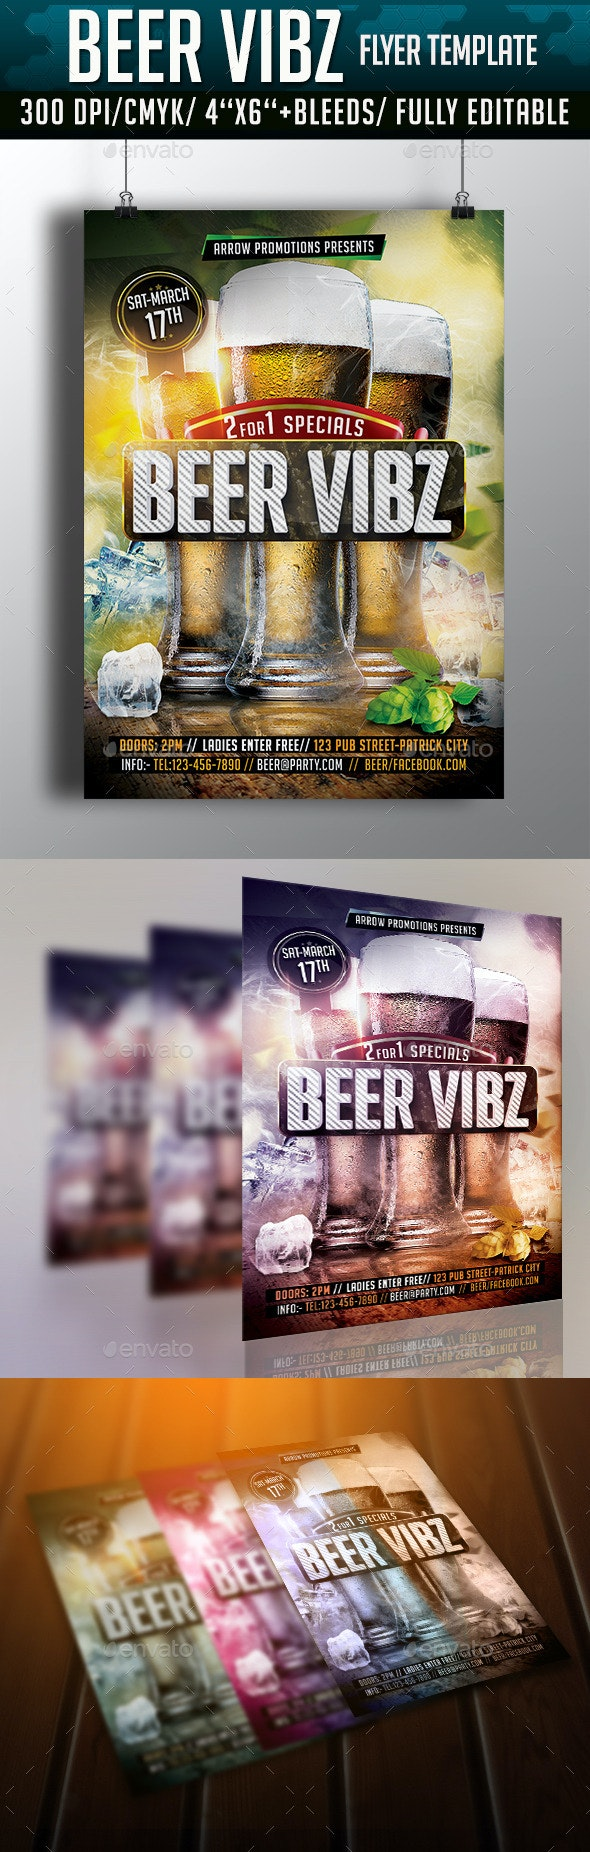 Beer Vibes Flyer Template - Clubs & Parties Events